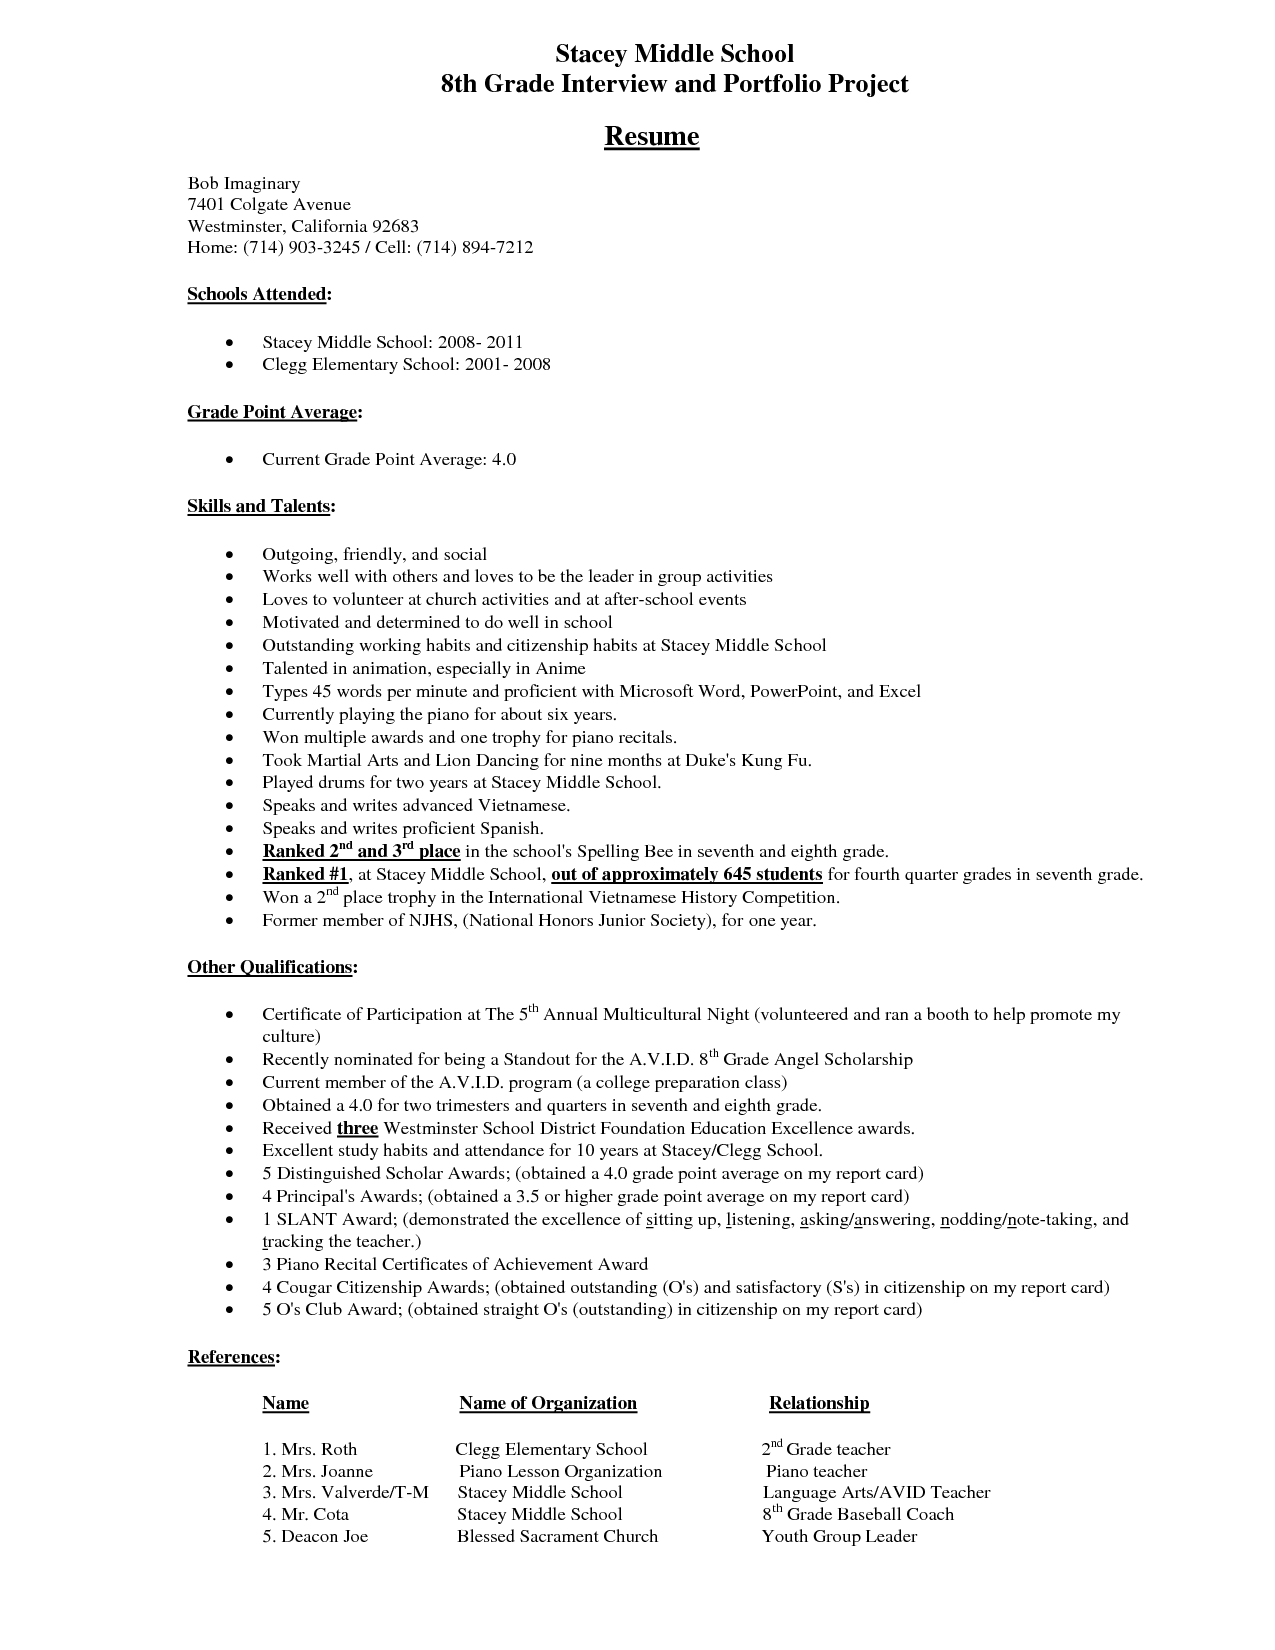 middle school student resume example stacey middle school th middle school student resume example stacey middle school 8th grade interview and portfolio project